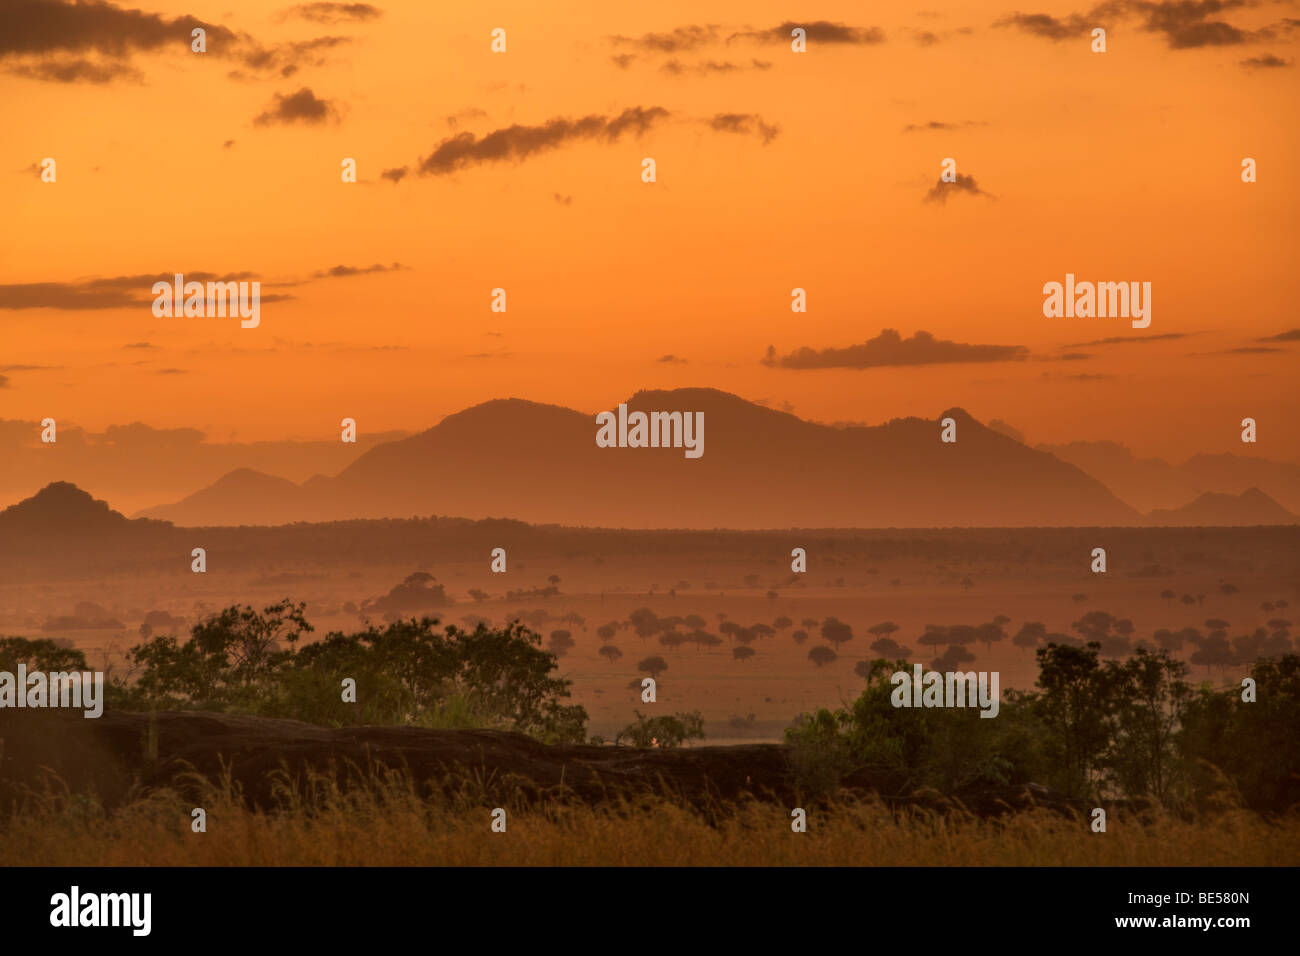 Mount Morungole seen from the Kidepo Valley National Park in northern Uganda at dawn. Stock Photo